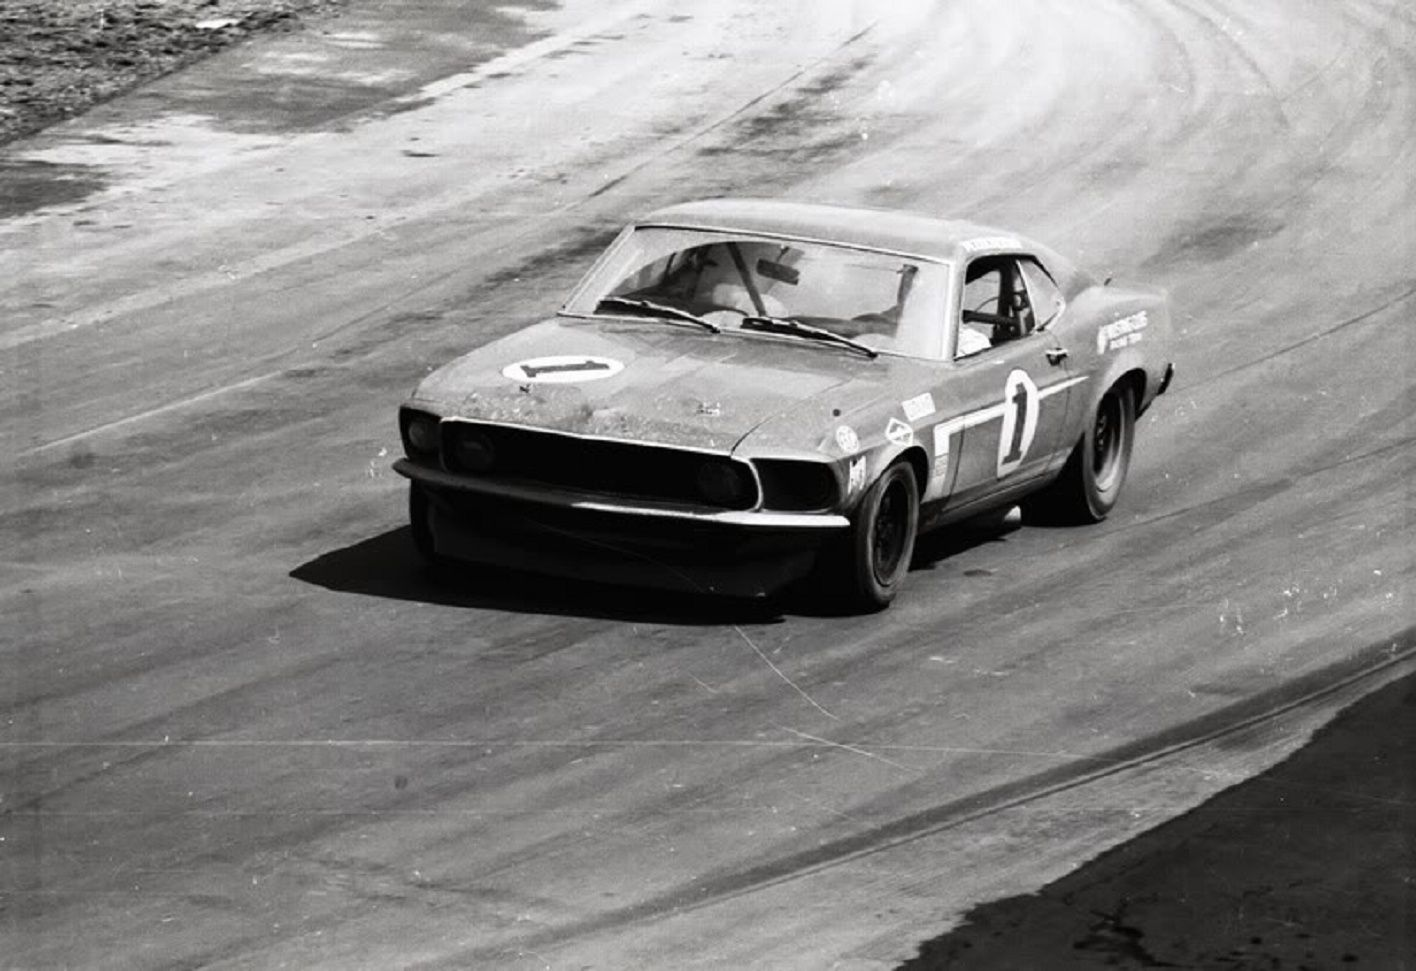 Peter Revson in his Boss 302 Trans Am Mustang.